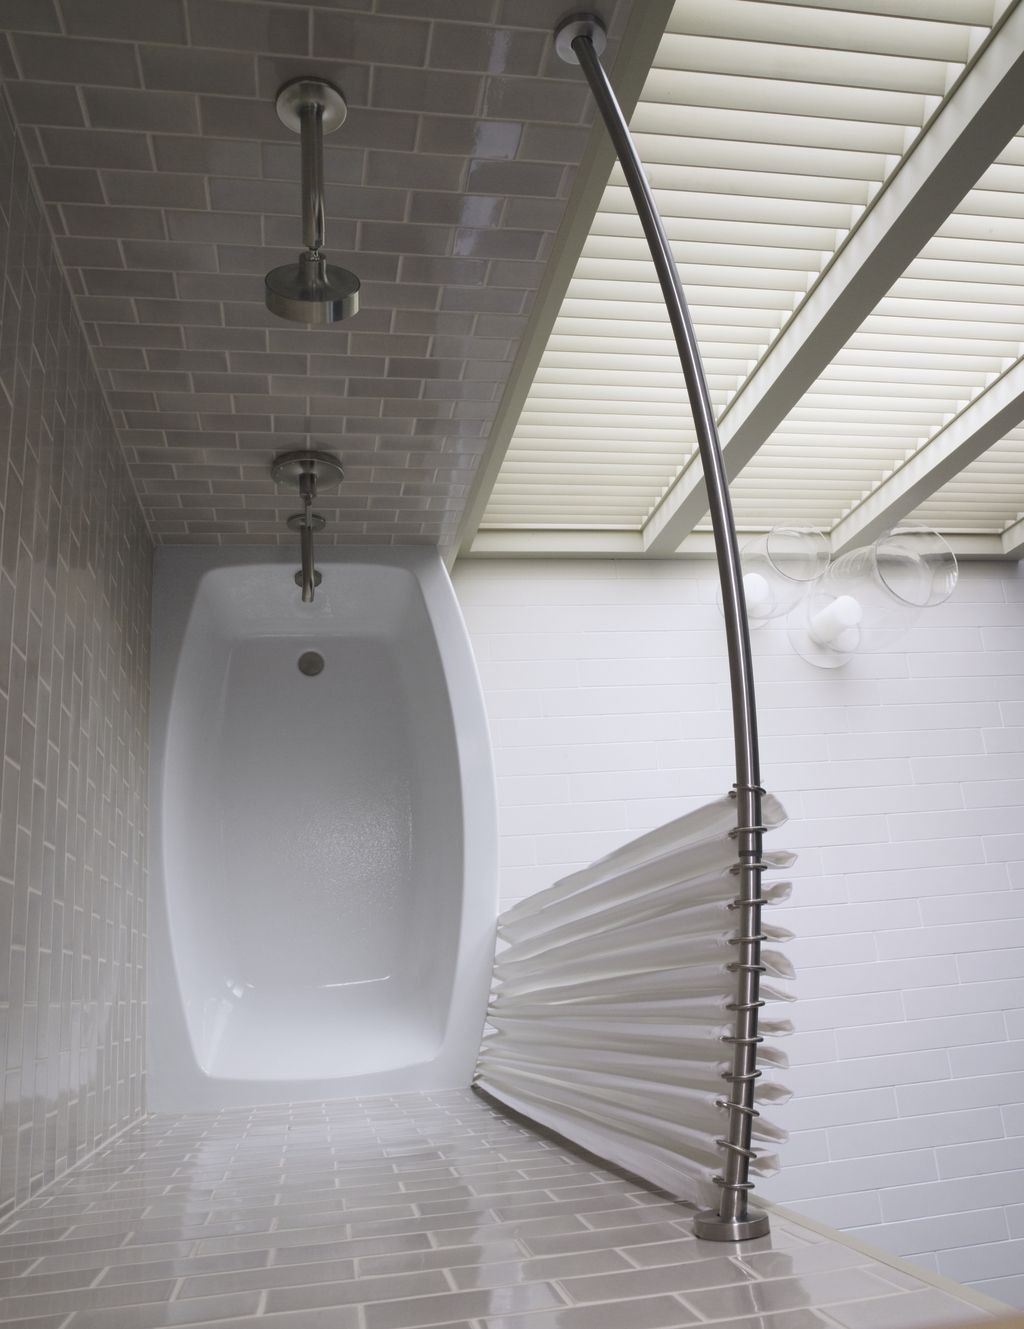 Expanse curved bath - makes sense to go with the curved shower rod ...